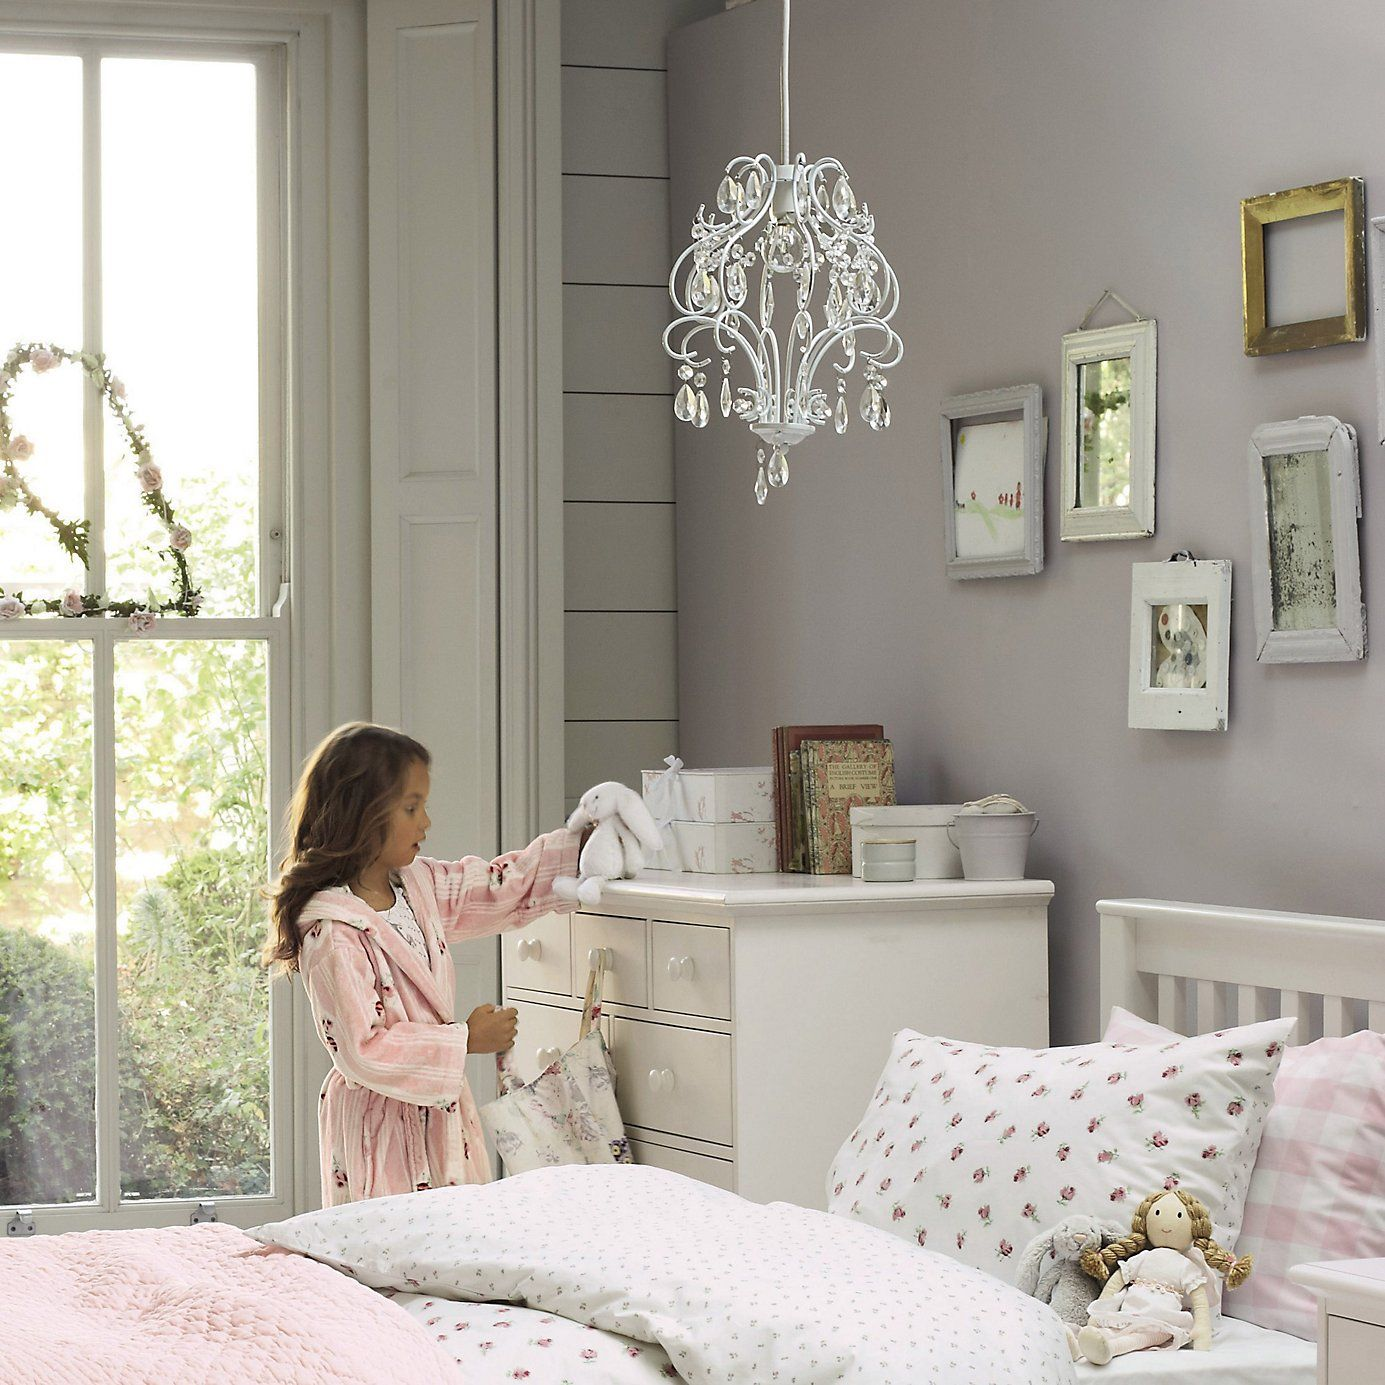 Buy Childrens Bedroom   Bedroom Accessories   Chandelier Shade from The  White Company. Buy Childrens Bedroom   Bedroom Accessories   Chandelier Shade